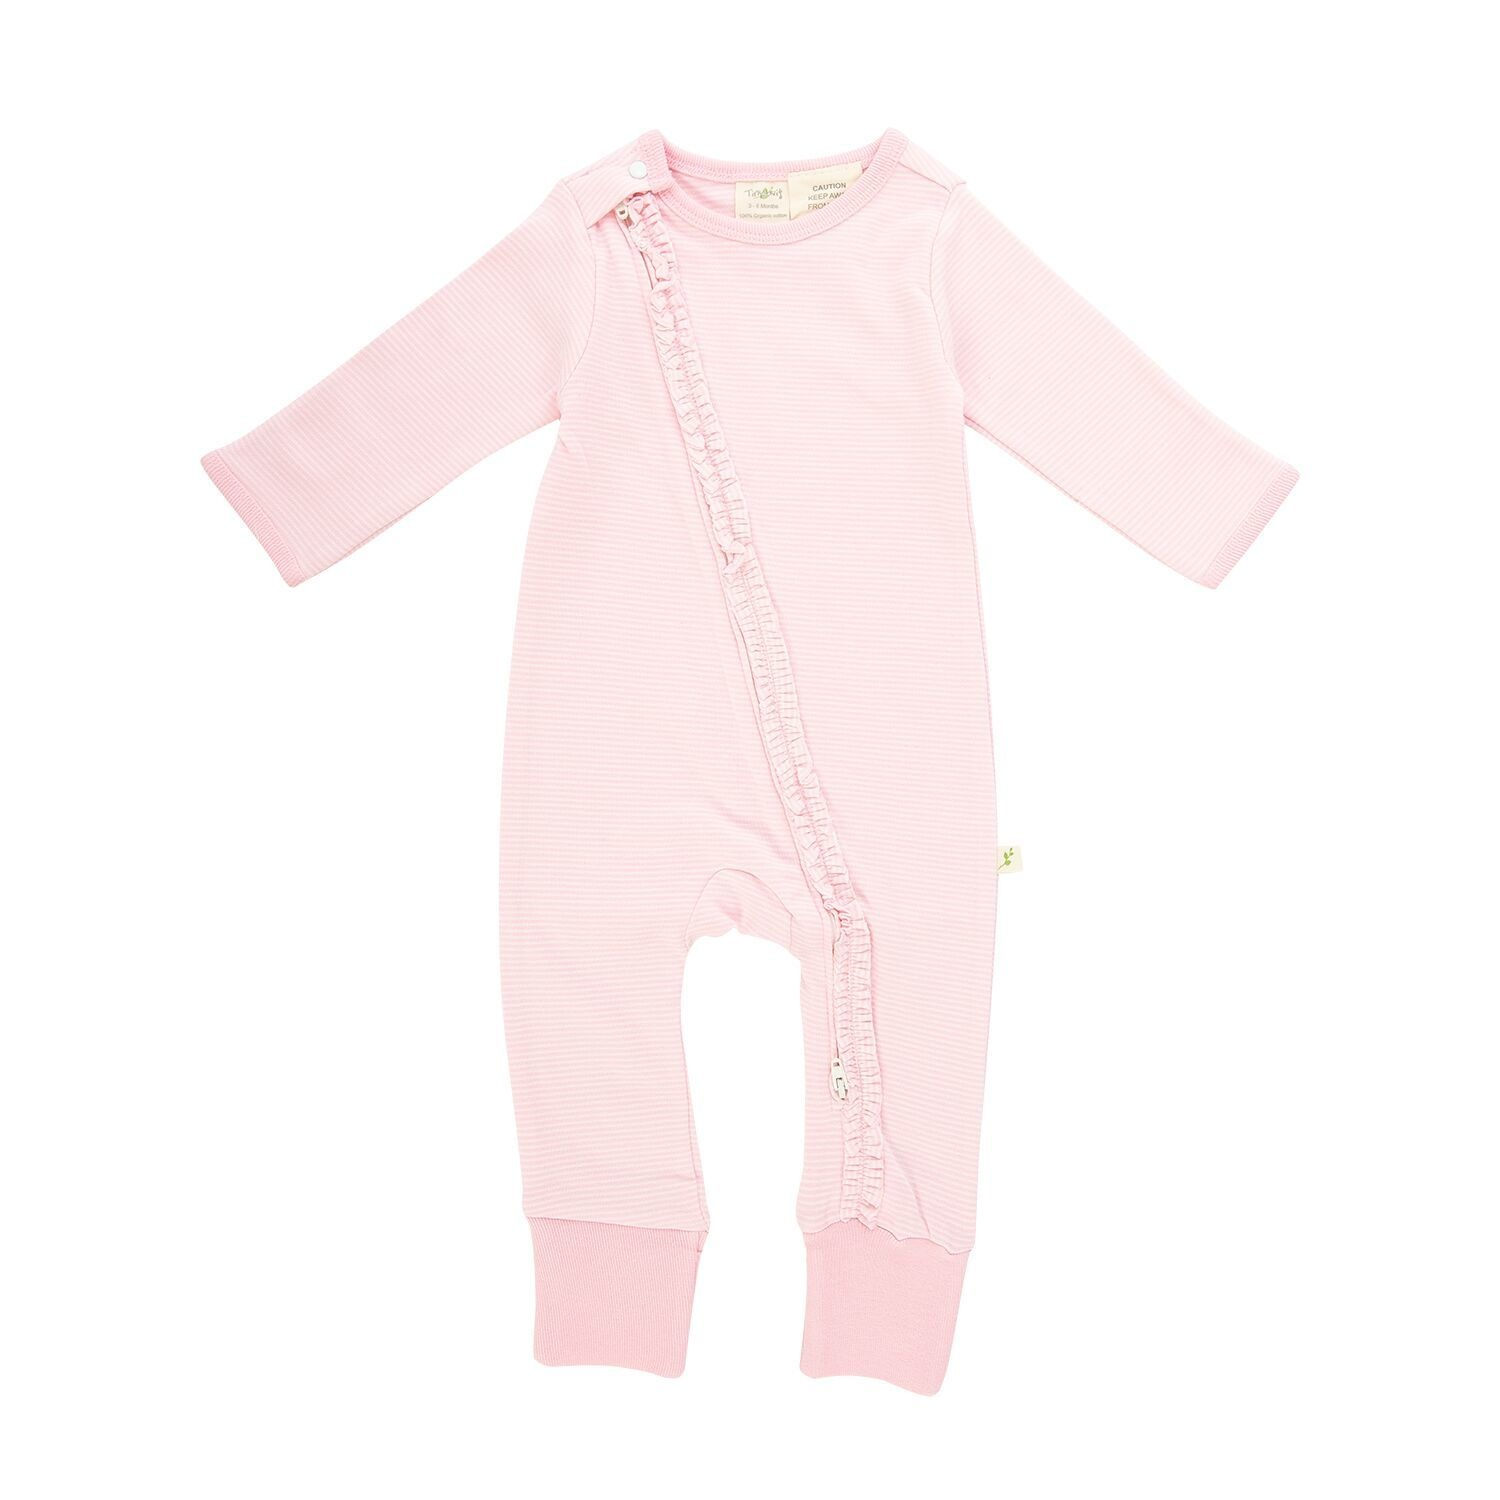 Tiny Twig Frill Zipsuit- Pink Stripes